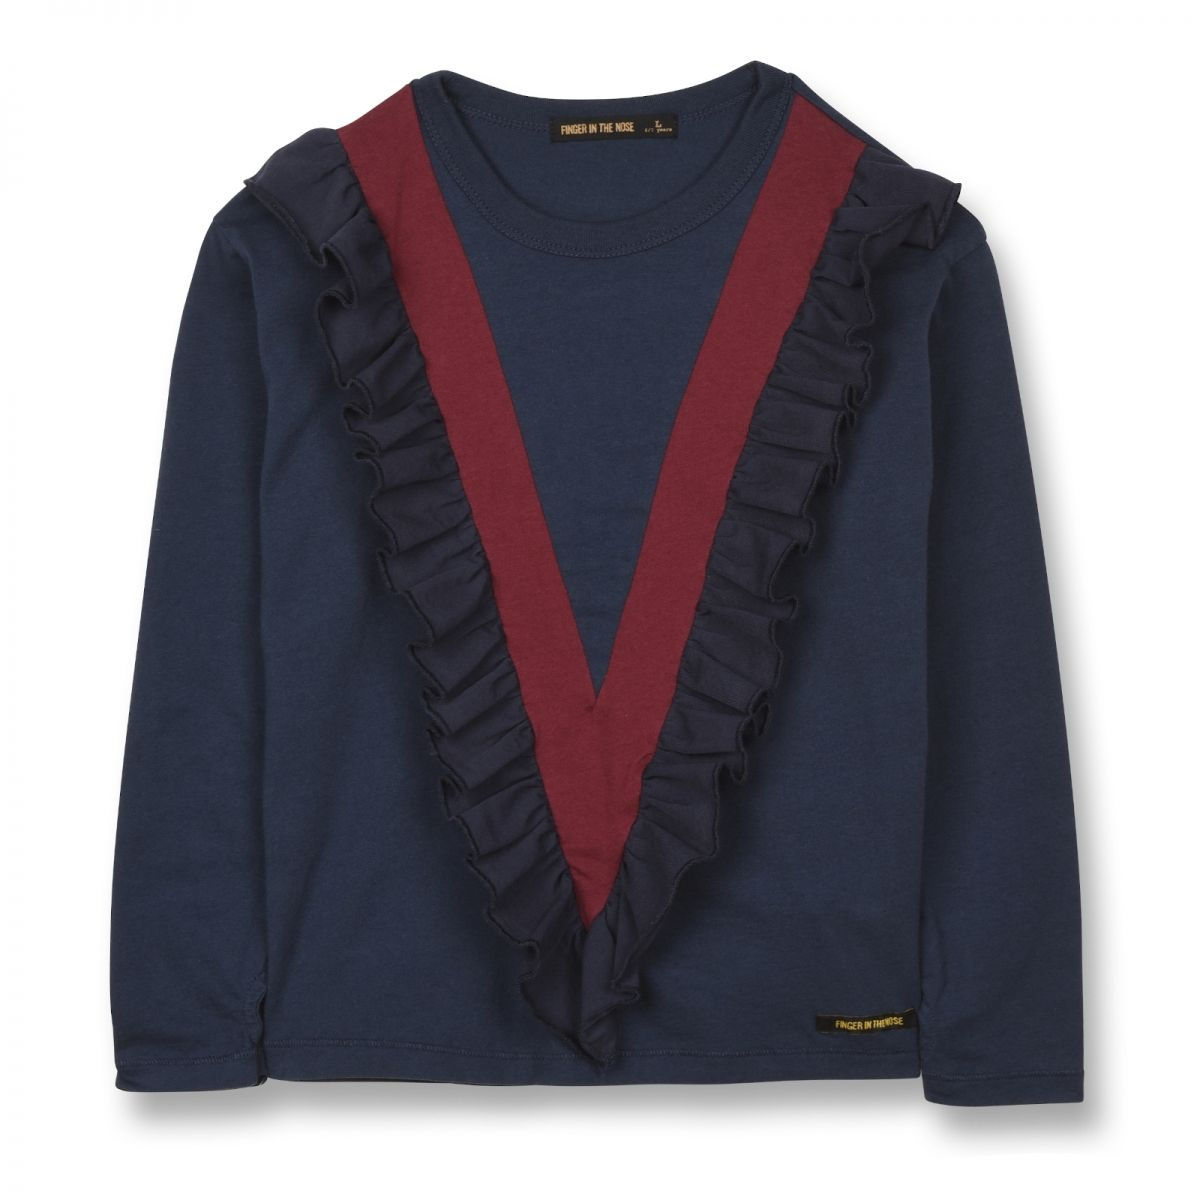 Finger in the nose - Shine Blouse Navy Blue - 1